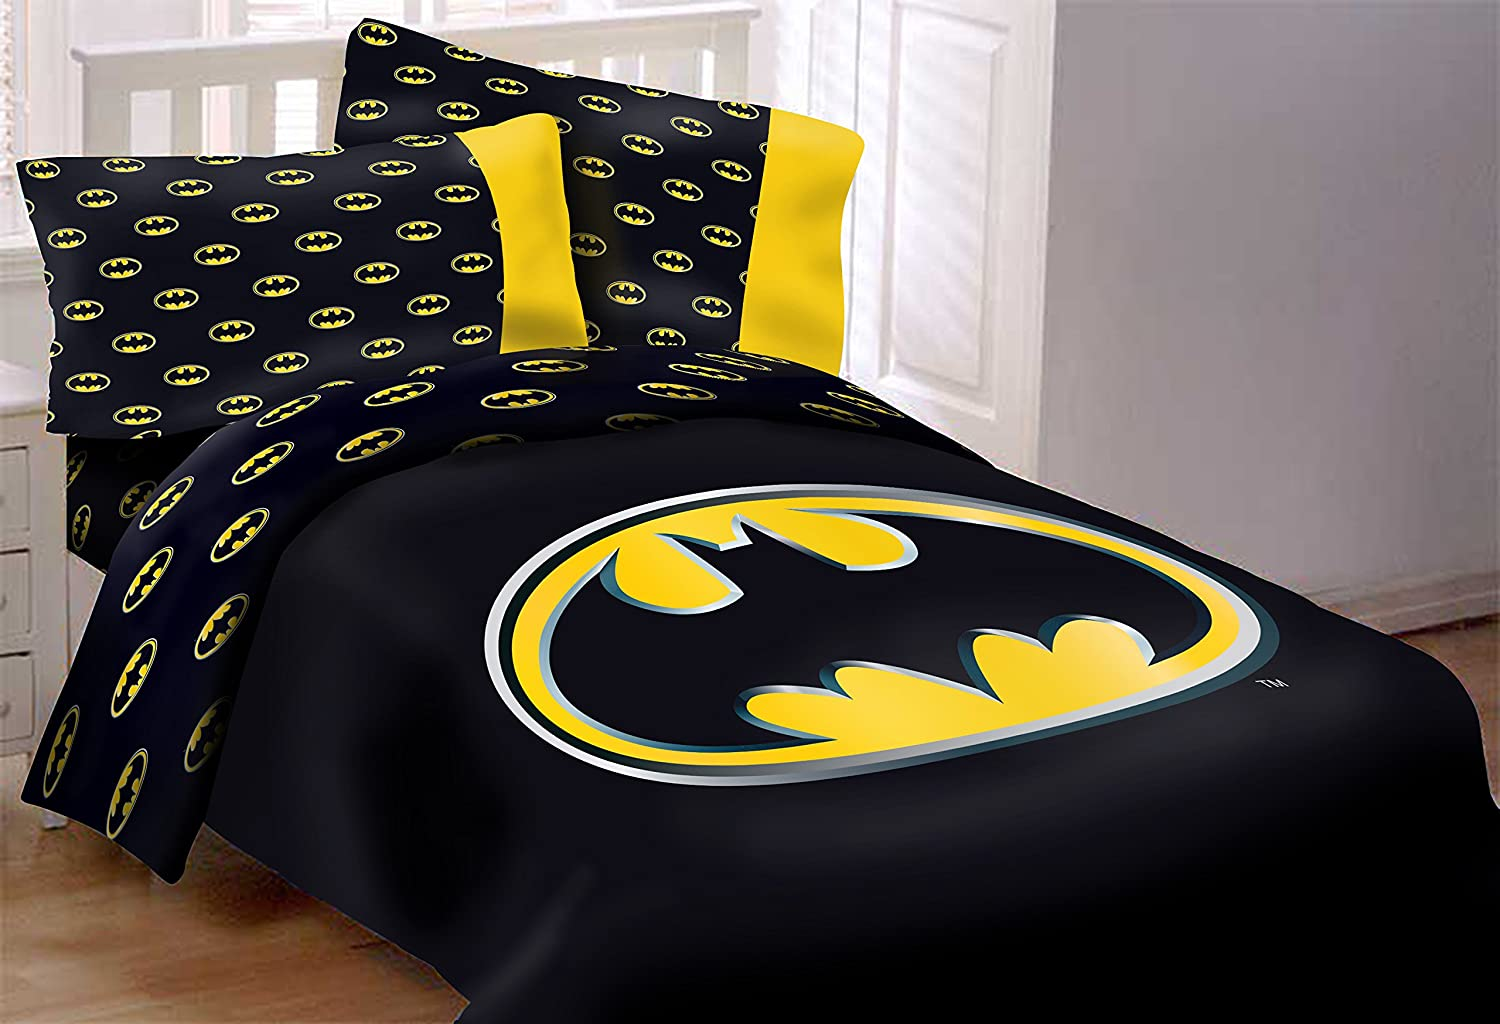 batman bedding queen size